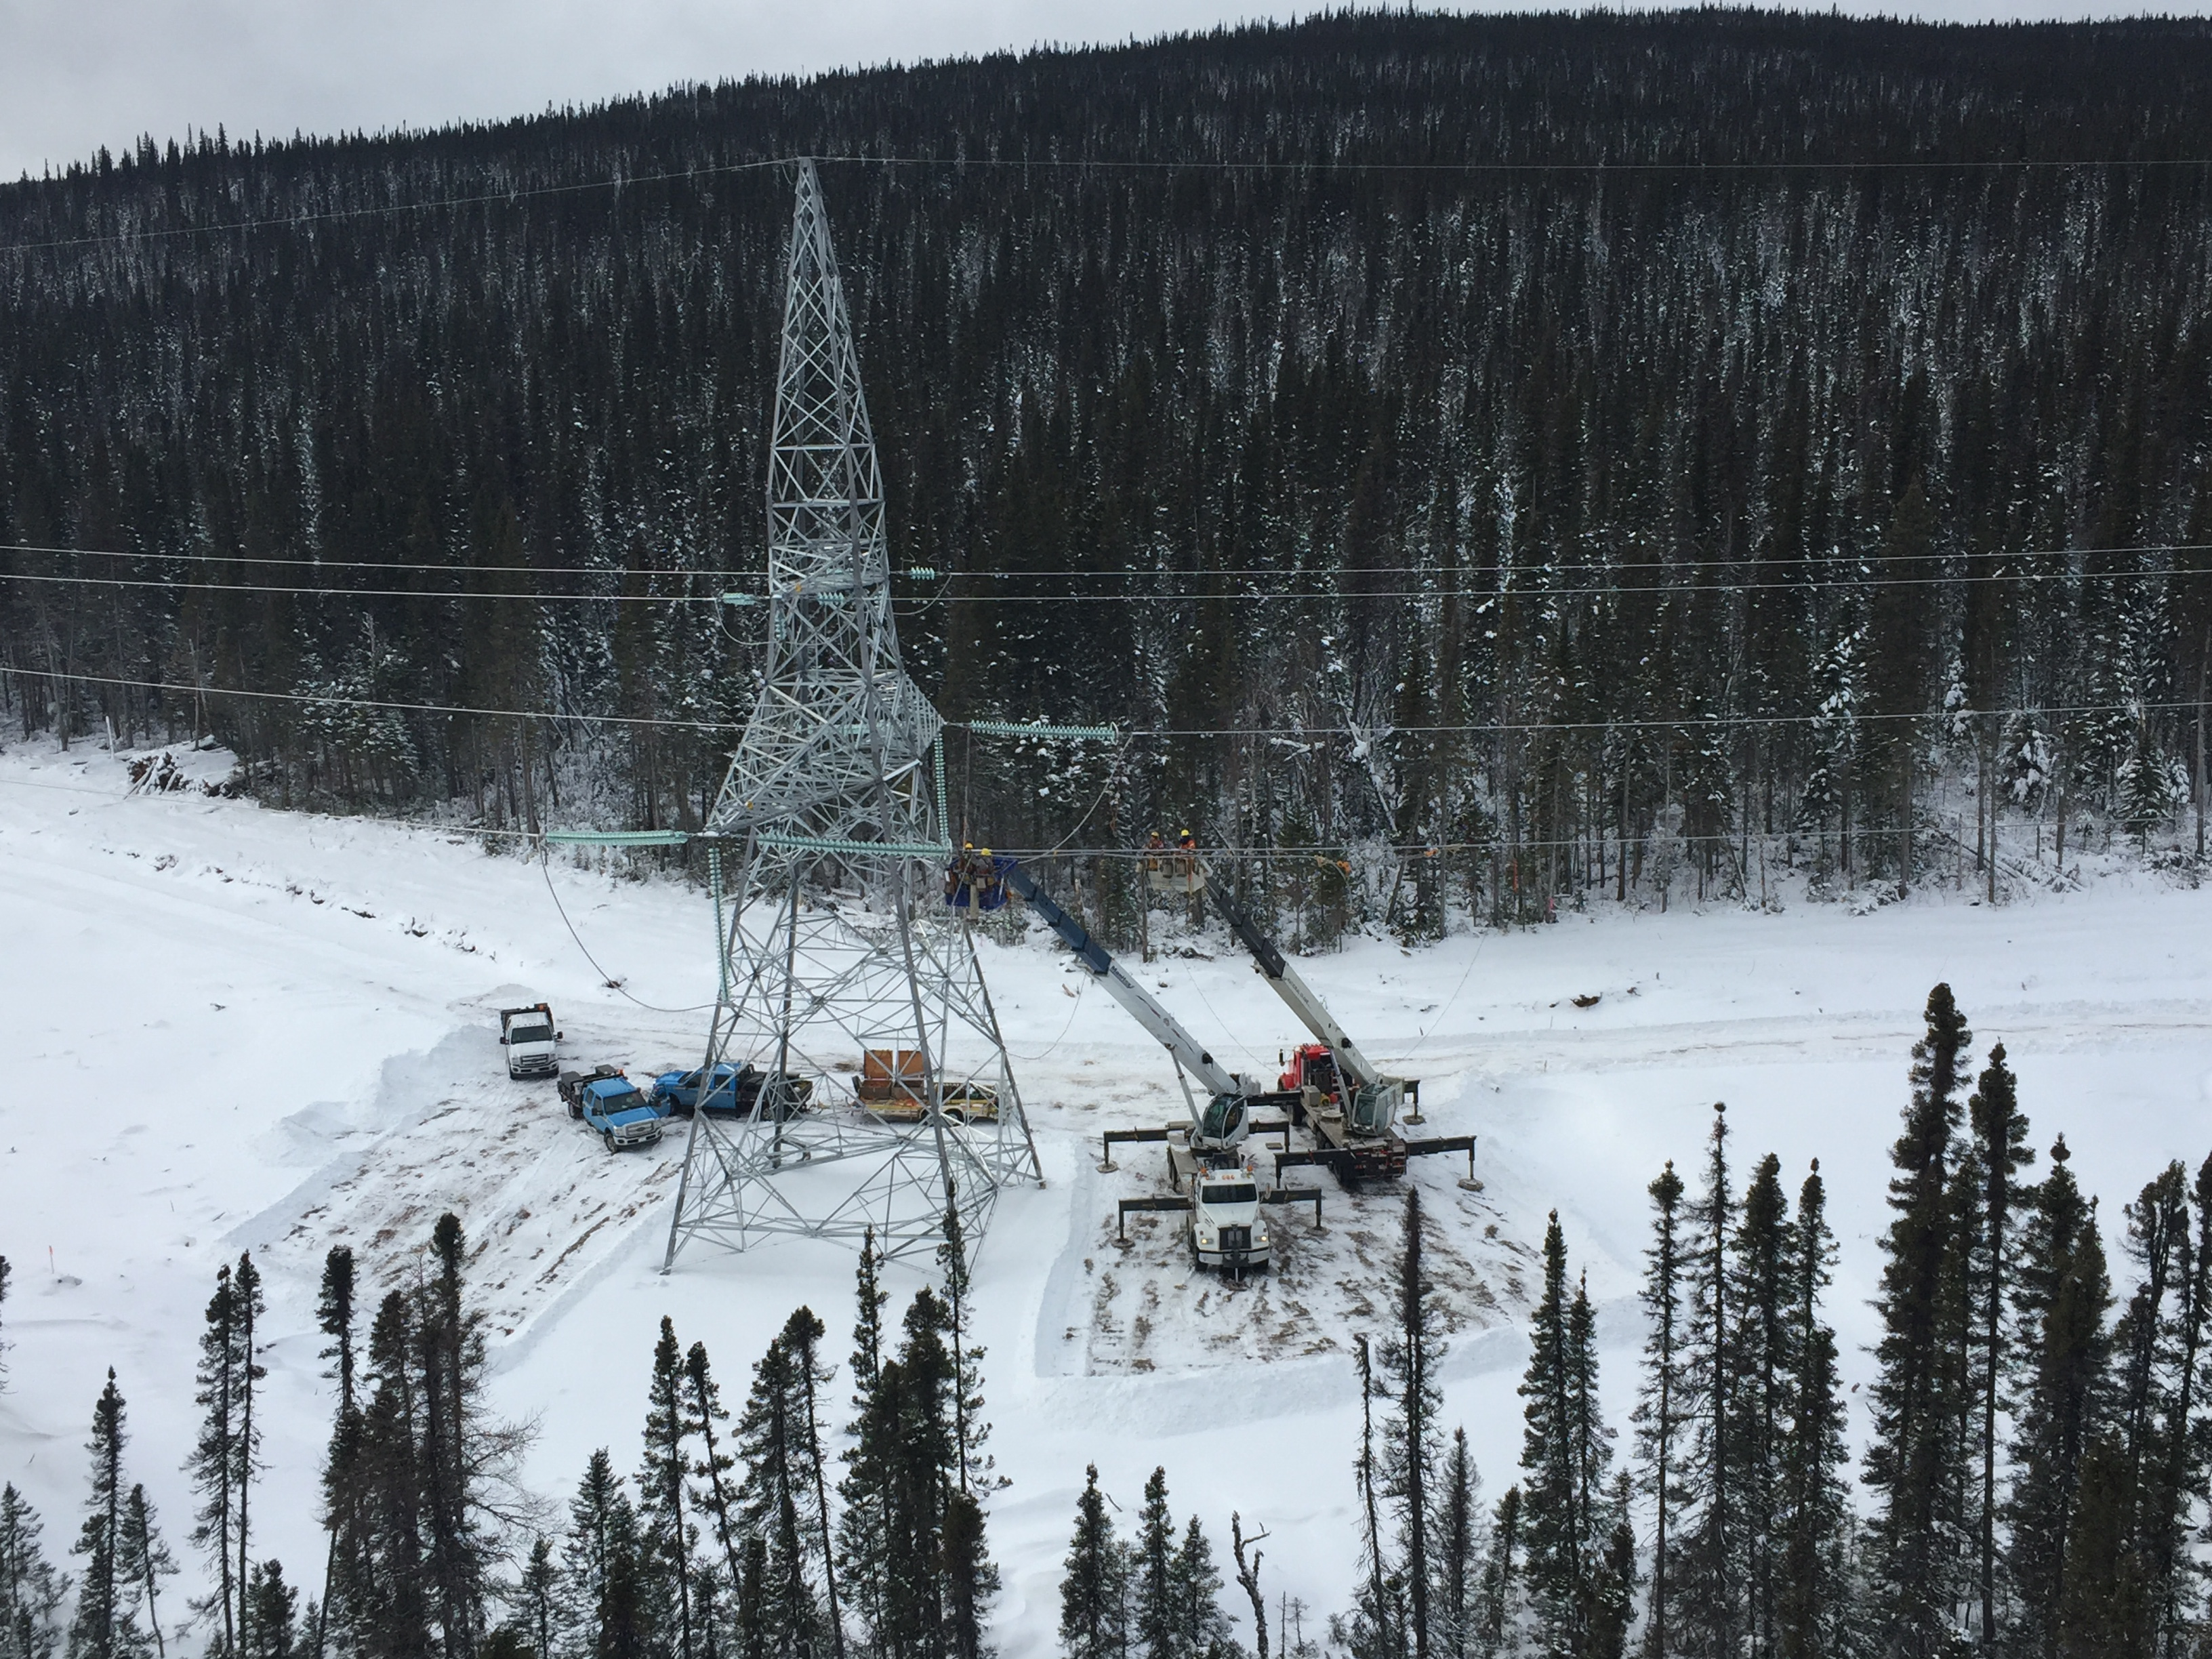 Construction of the Labrador-Island Link underway in Labrador